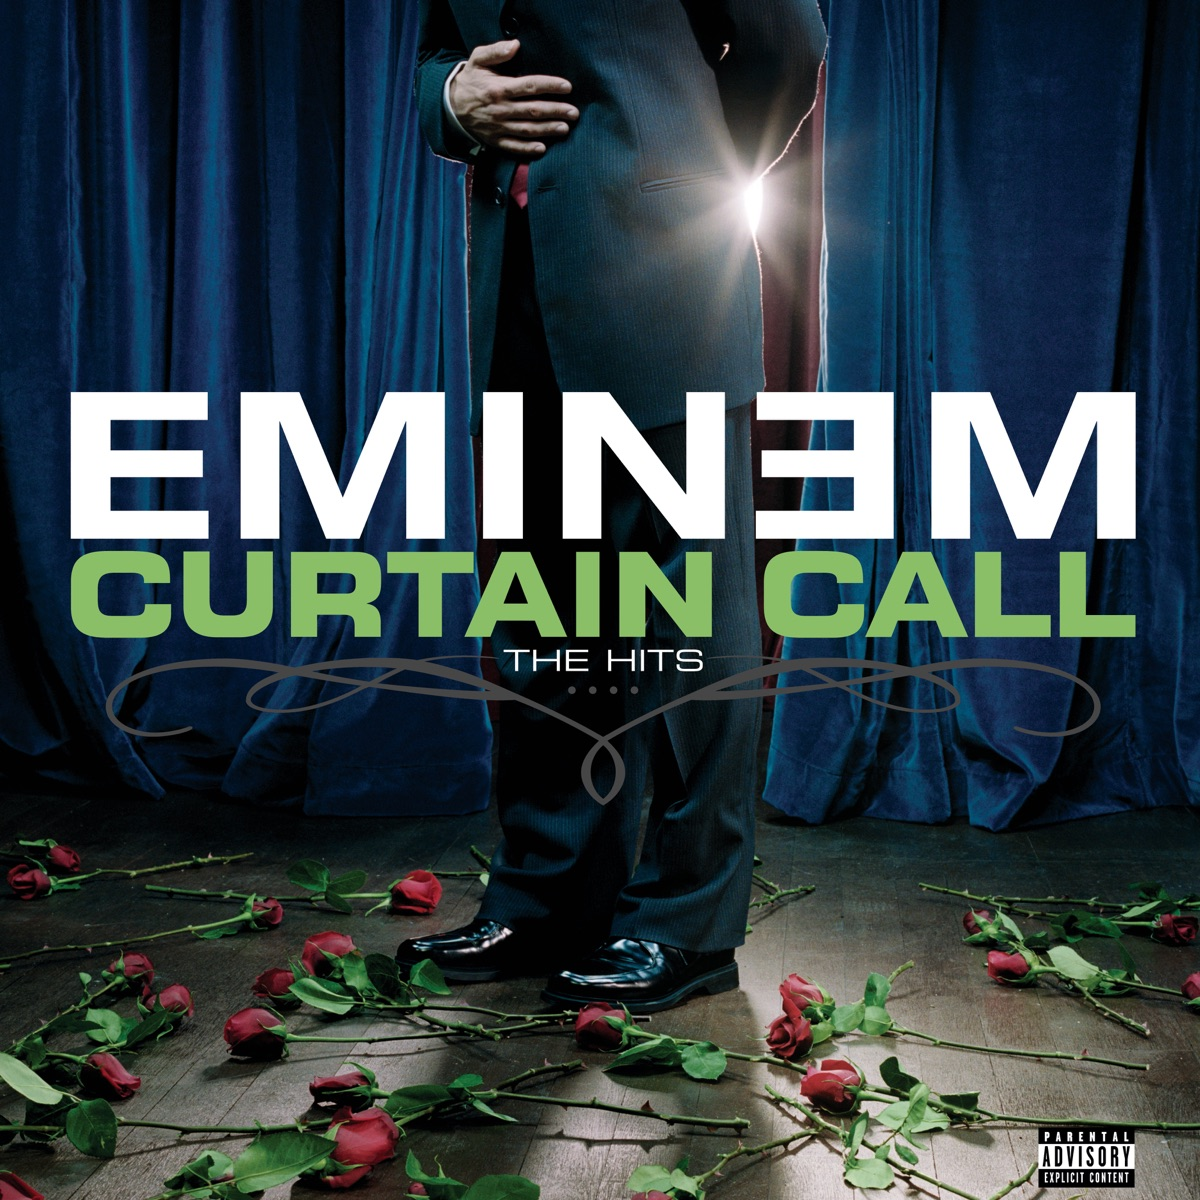 Curtain Call - The Hits Deluxe Version Eminem CD cover